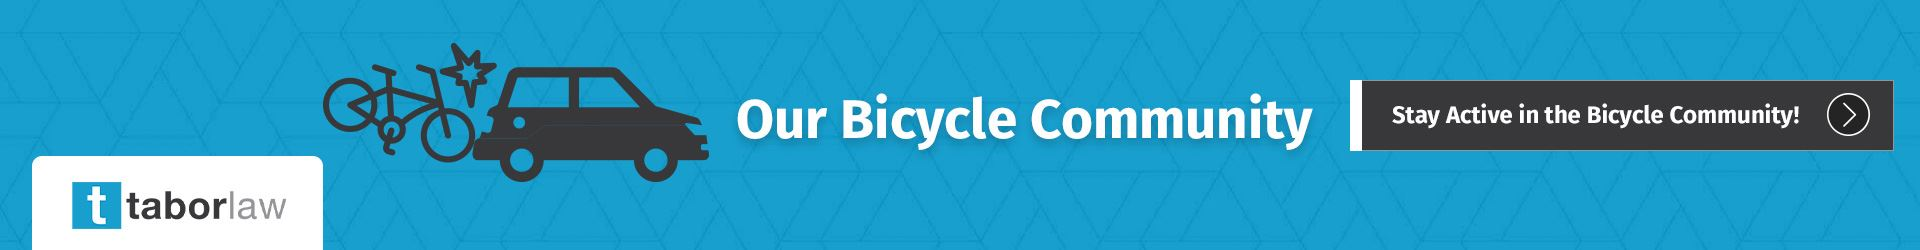 Click here to visit our Bicycle Community page